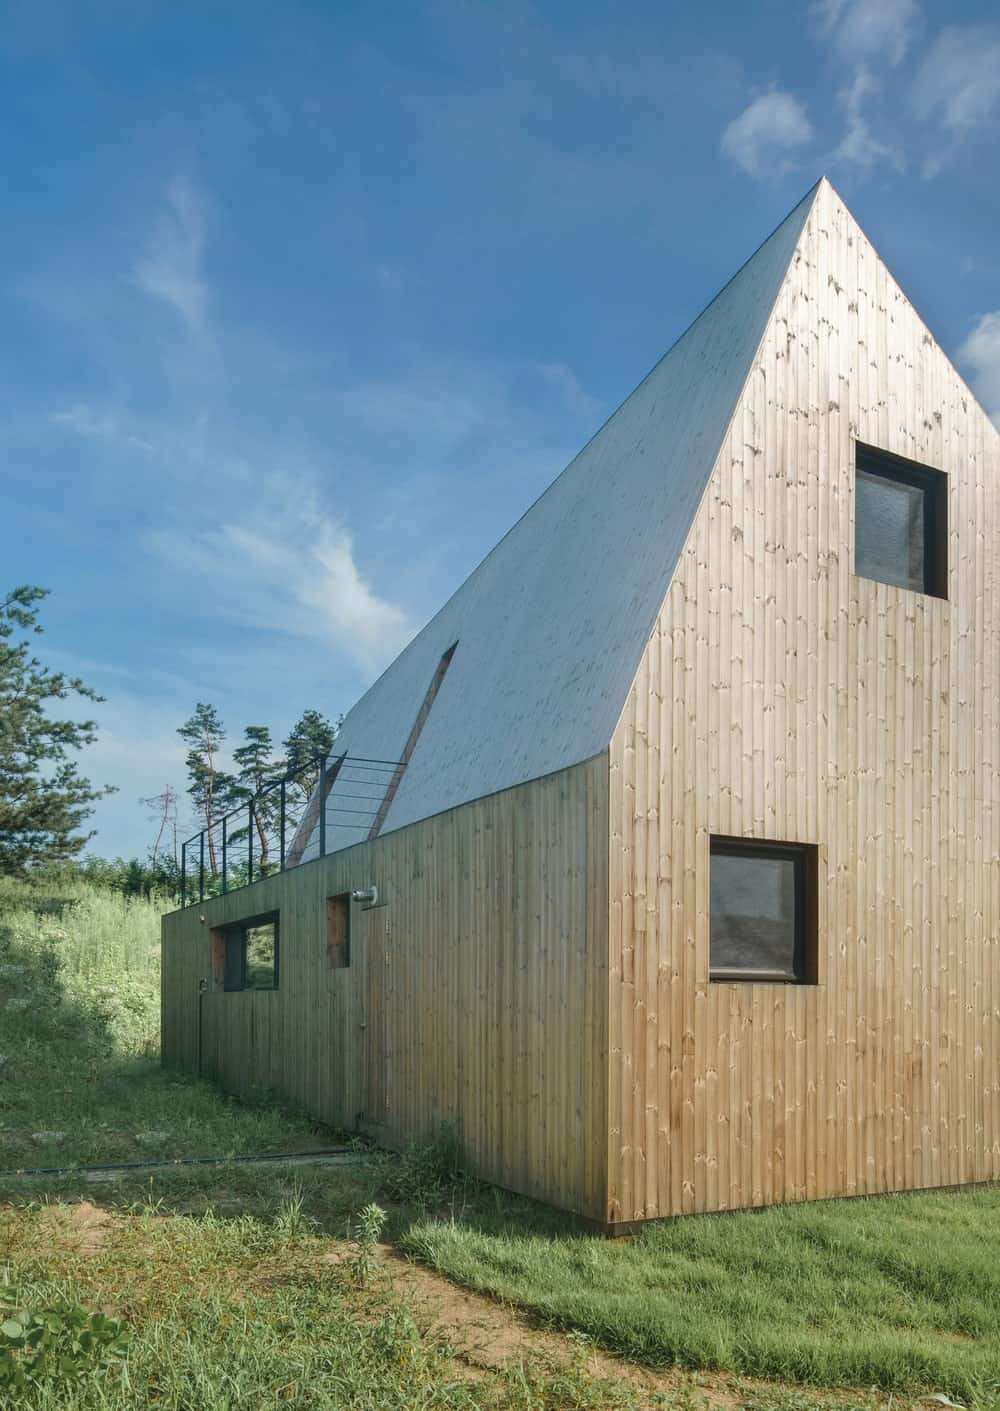 This is a close look at the simple and small windows of the house with wooden exterior walls.